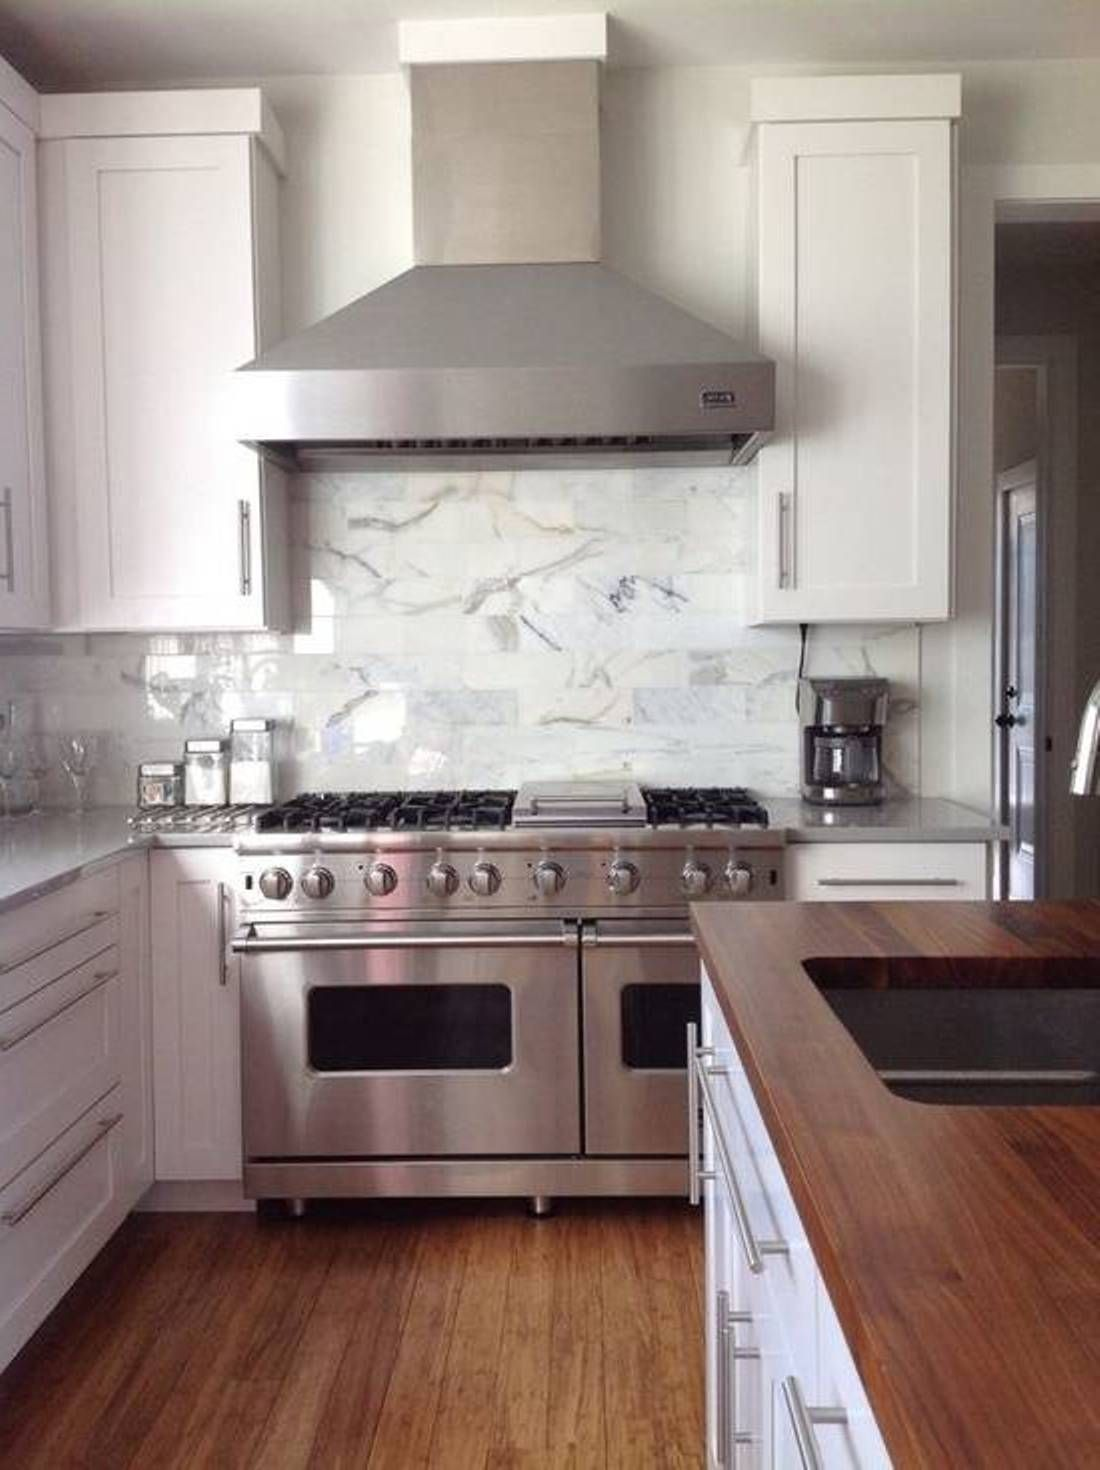 Unique darkslategray stainless steel stove backsplash for Modern kitchen white cabinets